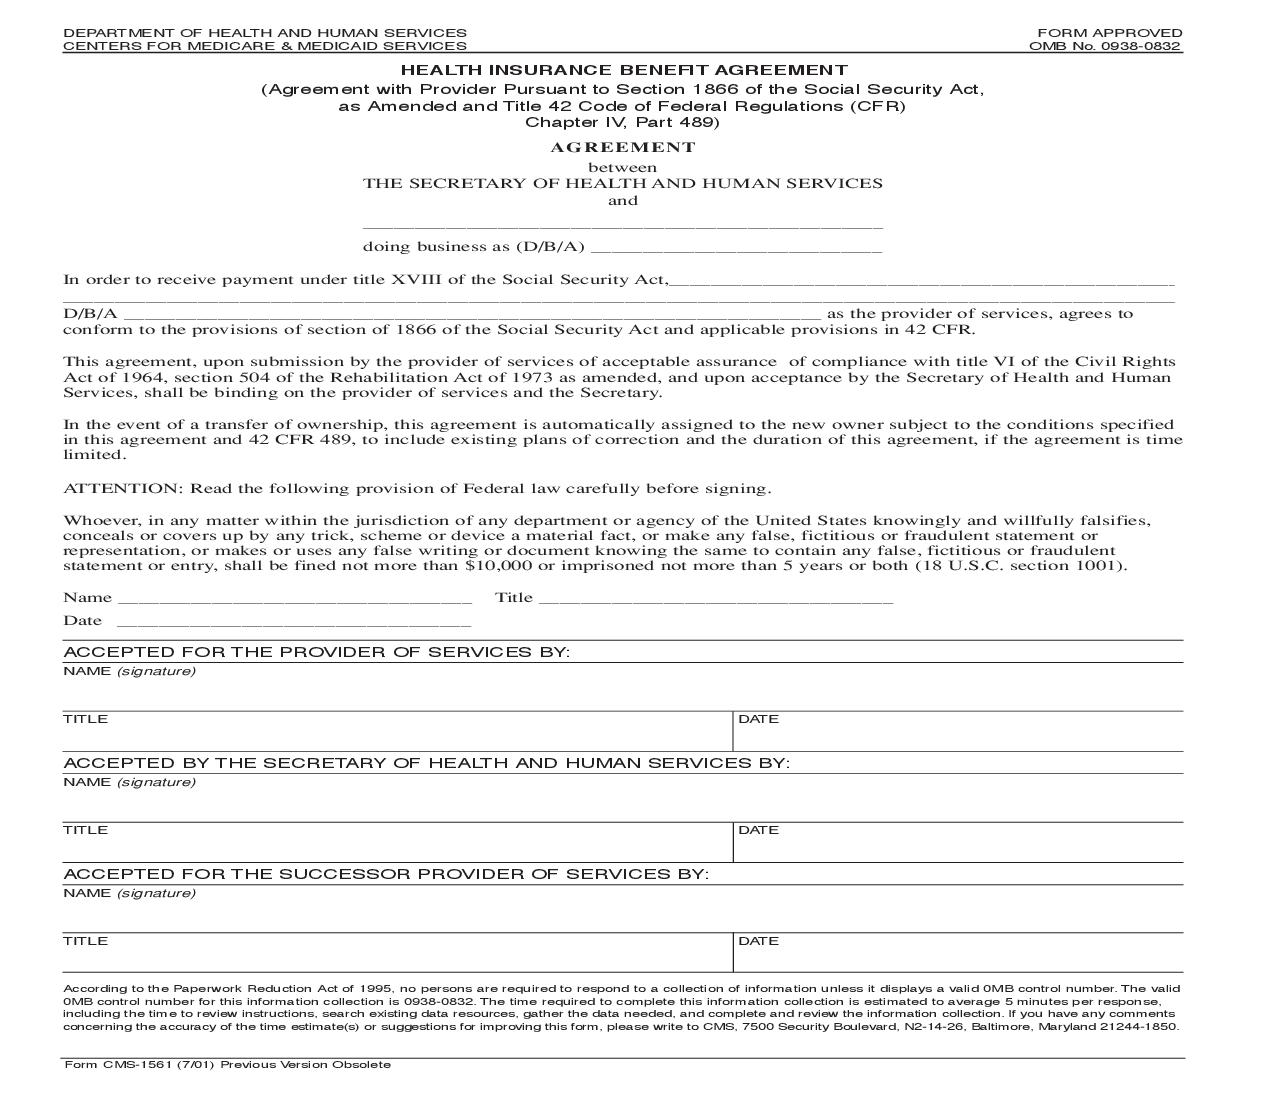 Health Insurance Benefit Agreement {CMS-1561} | Pdf Fpdf Doc Docx | Official Federal Forms